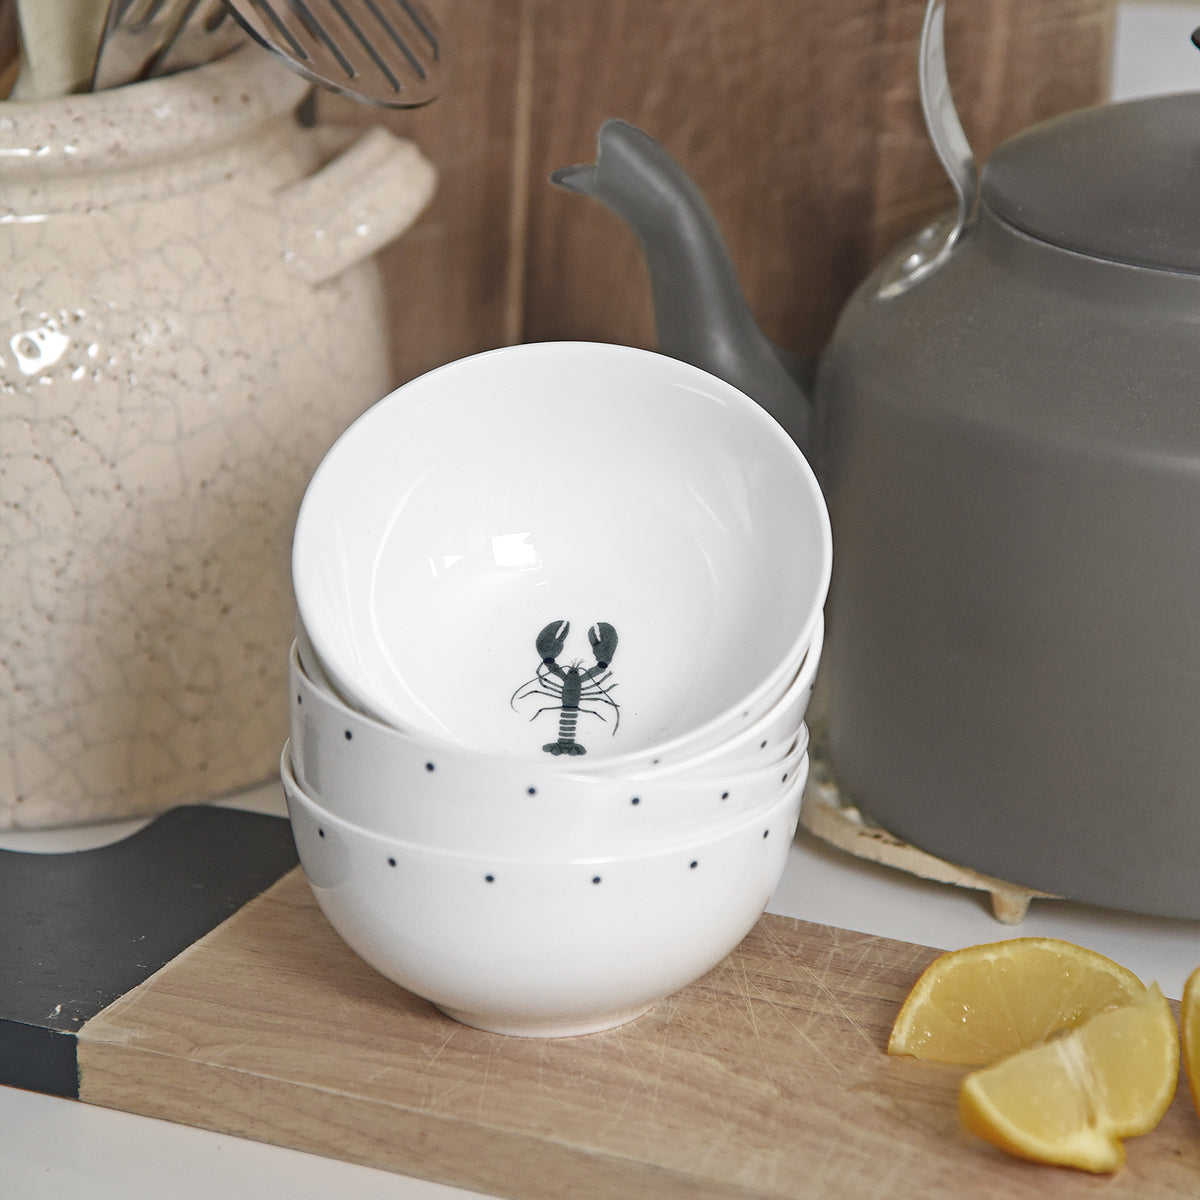 Fine bone china Lobster Nibbles Bowl by Sophie Allport